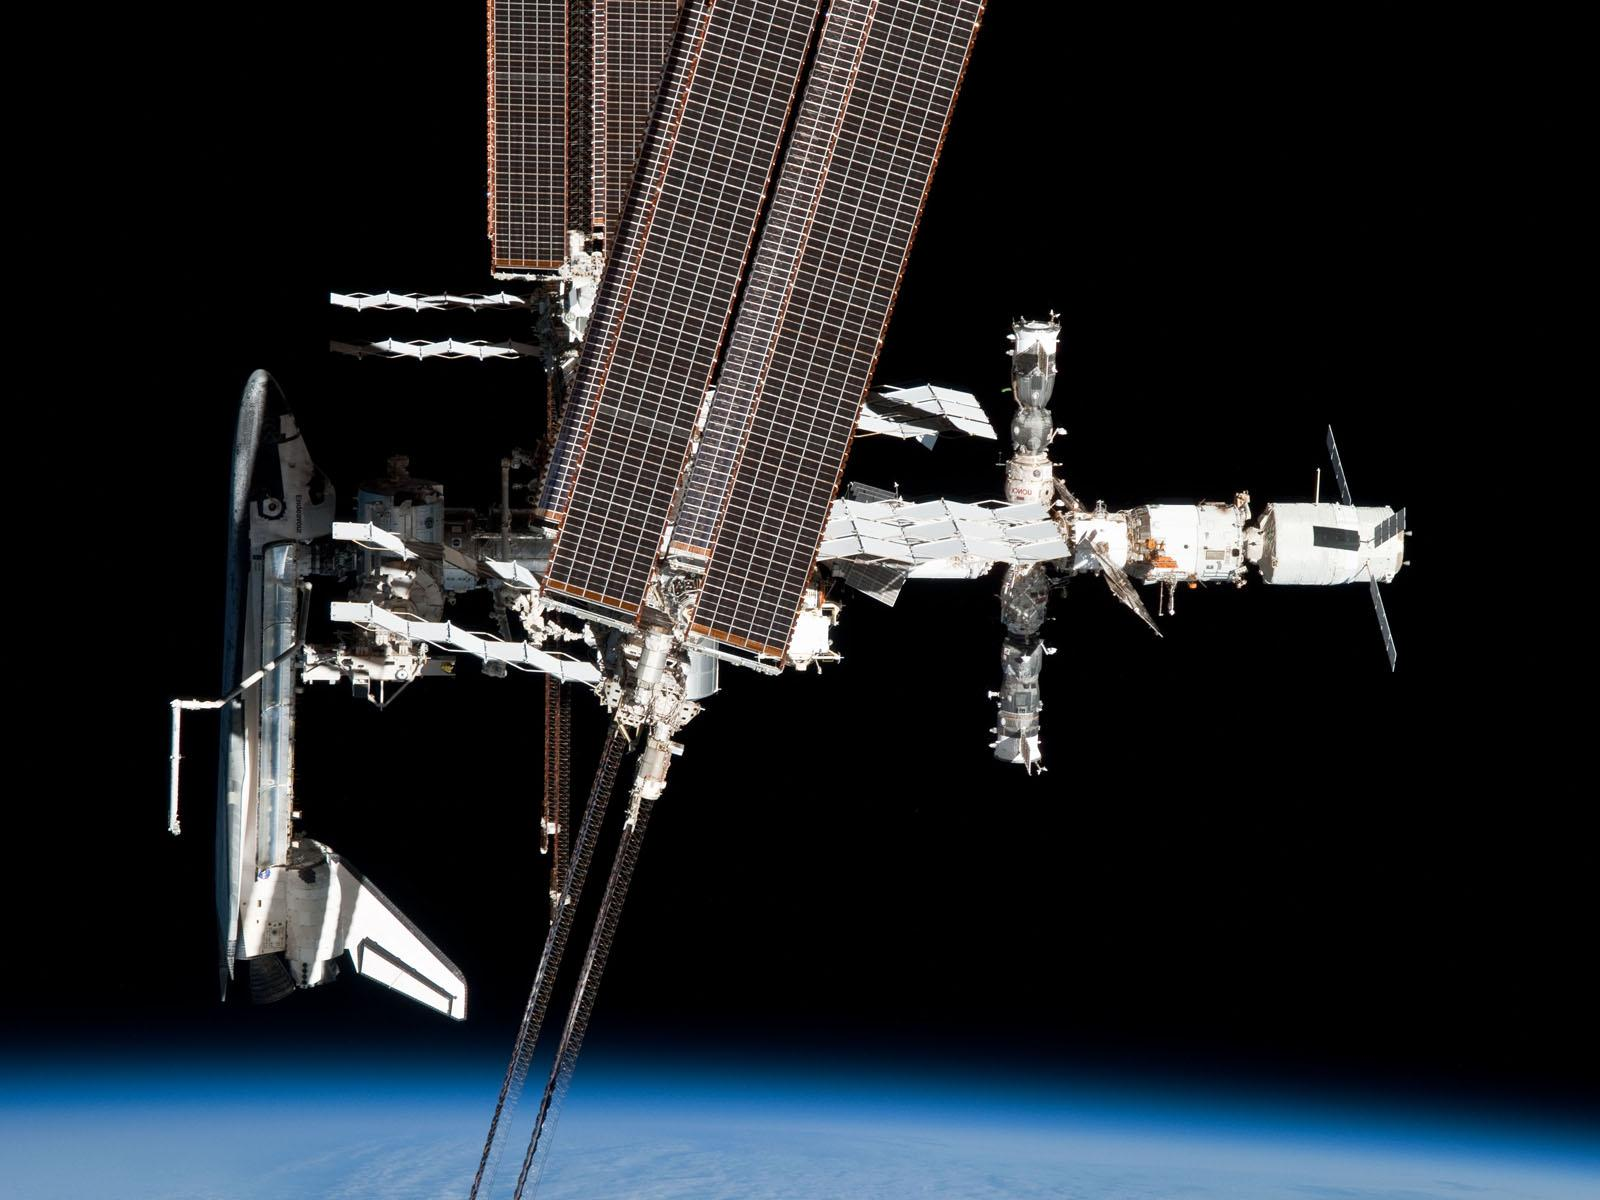 The last views of Endeavour and ISS - Bad Astronomy : Bad ...